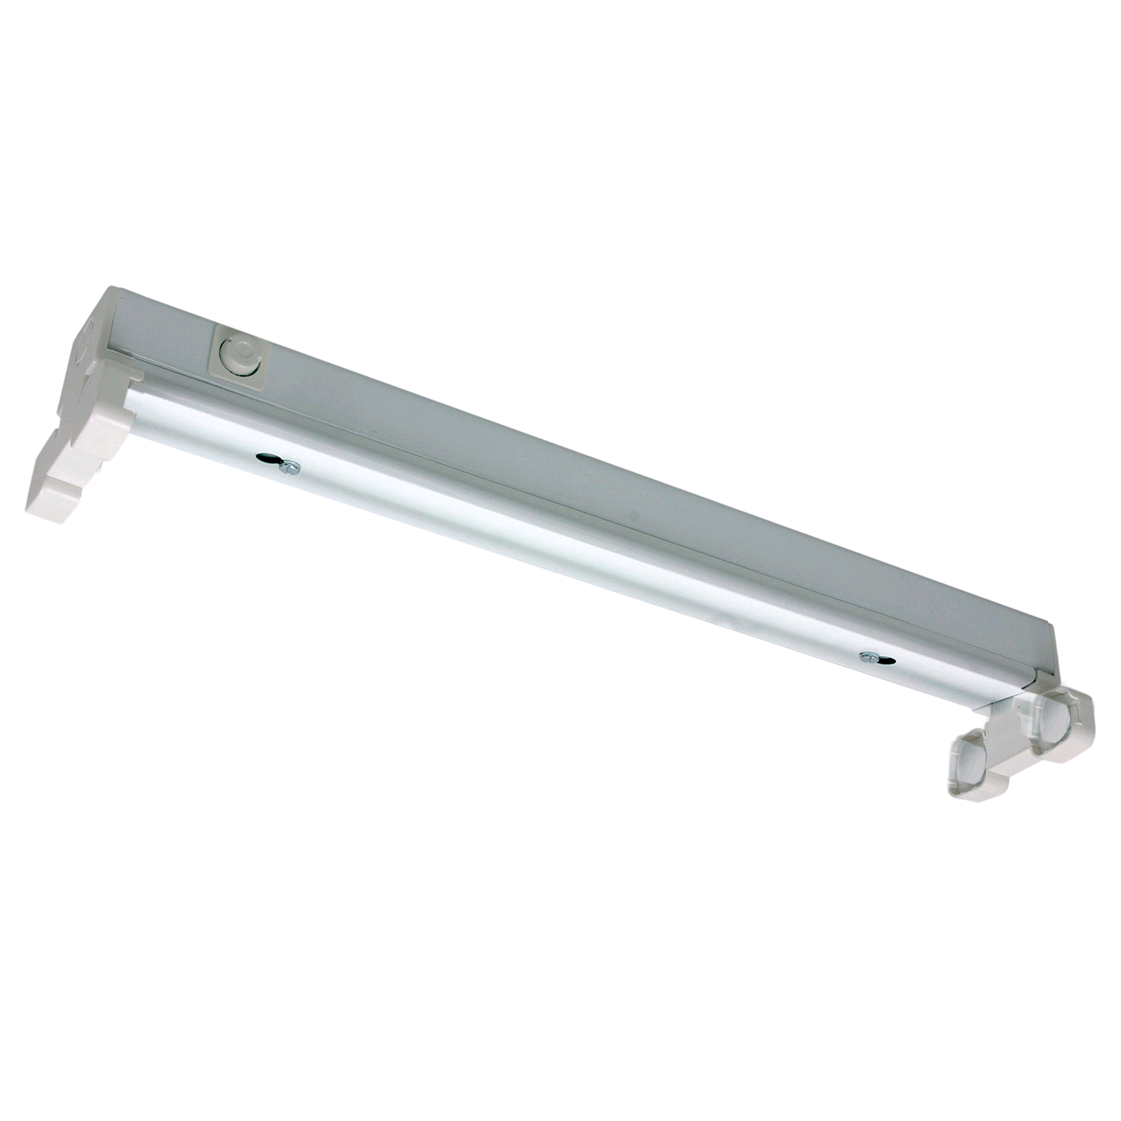 CED Empty Twin Batten Housing For LED Tubes 6ft